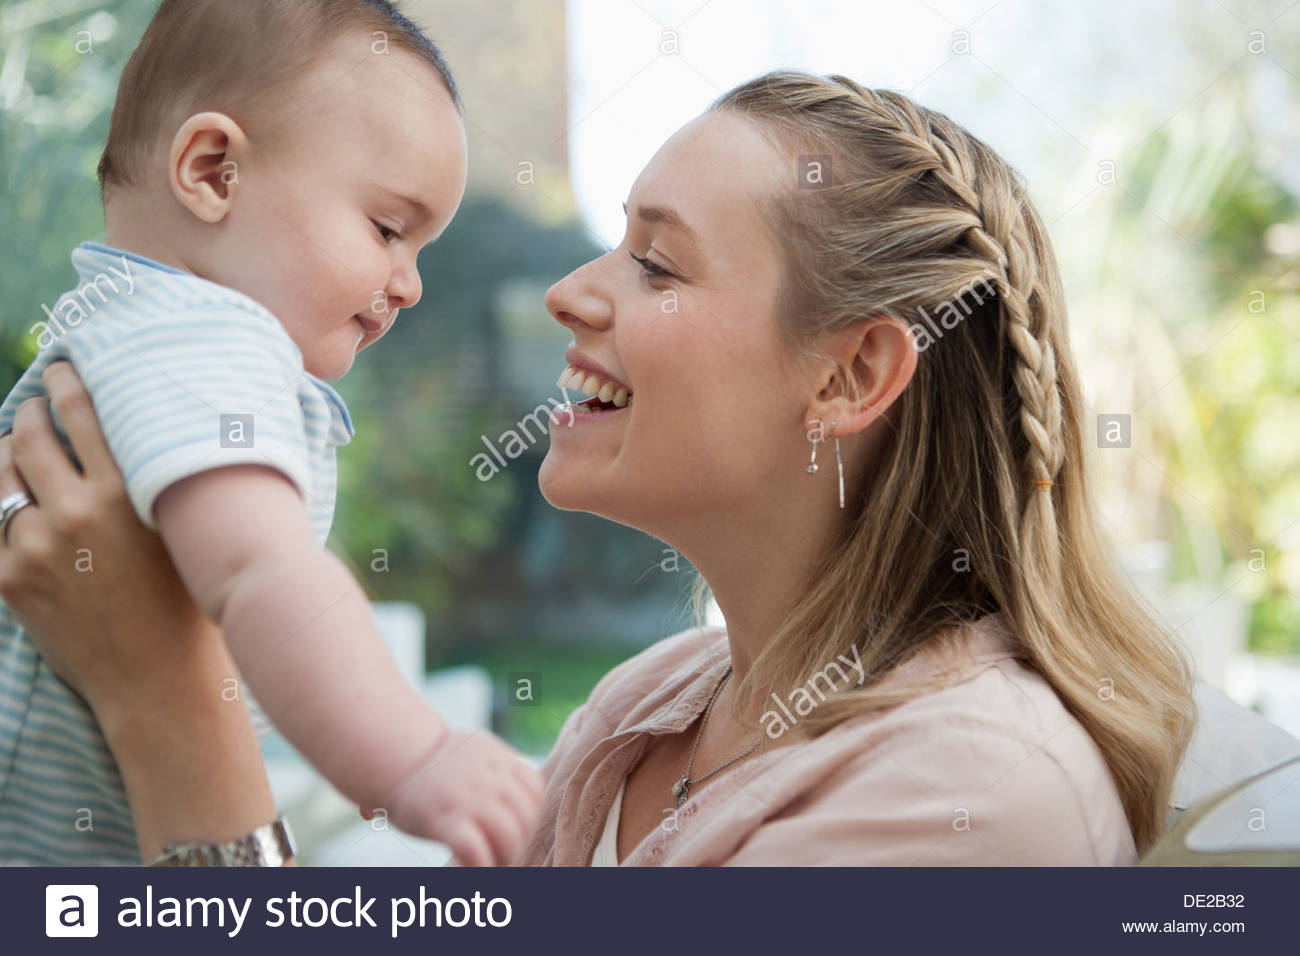 Smiling mother baby son anneau de levage Photo Stock